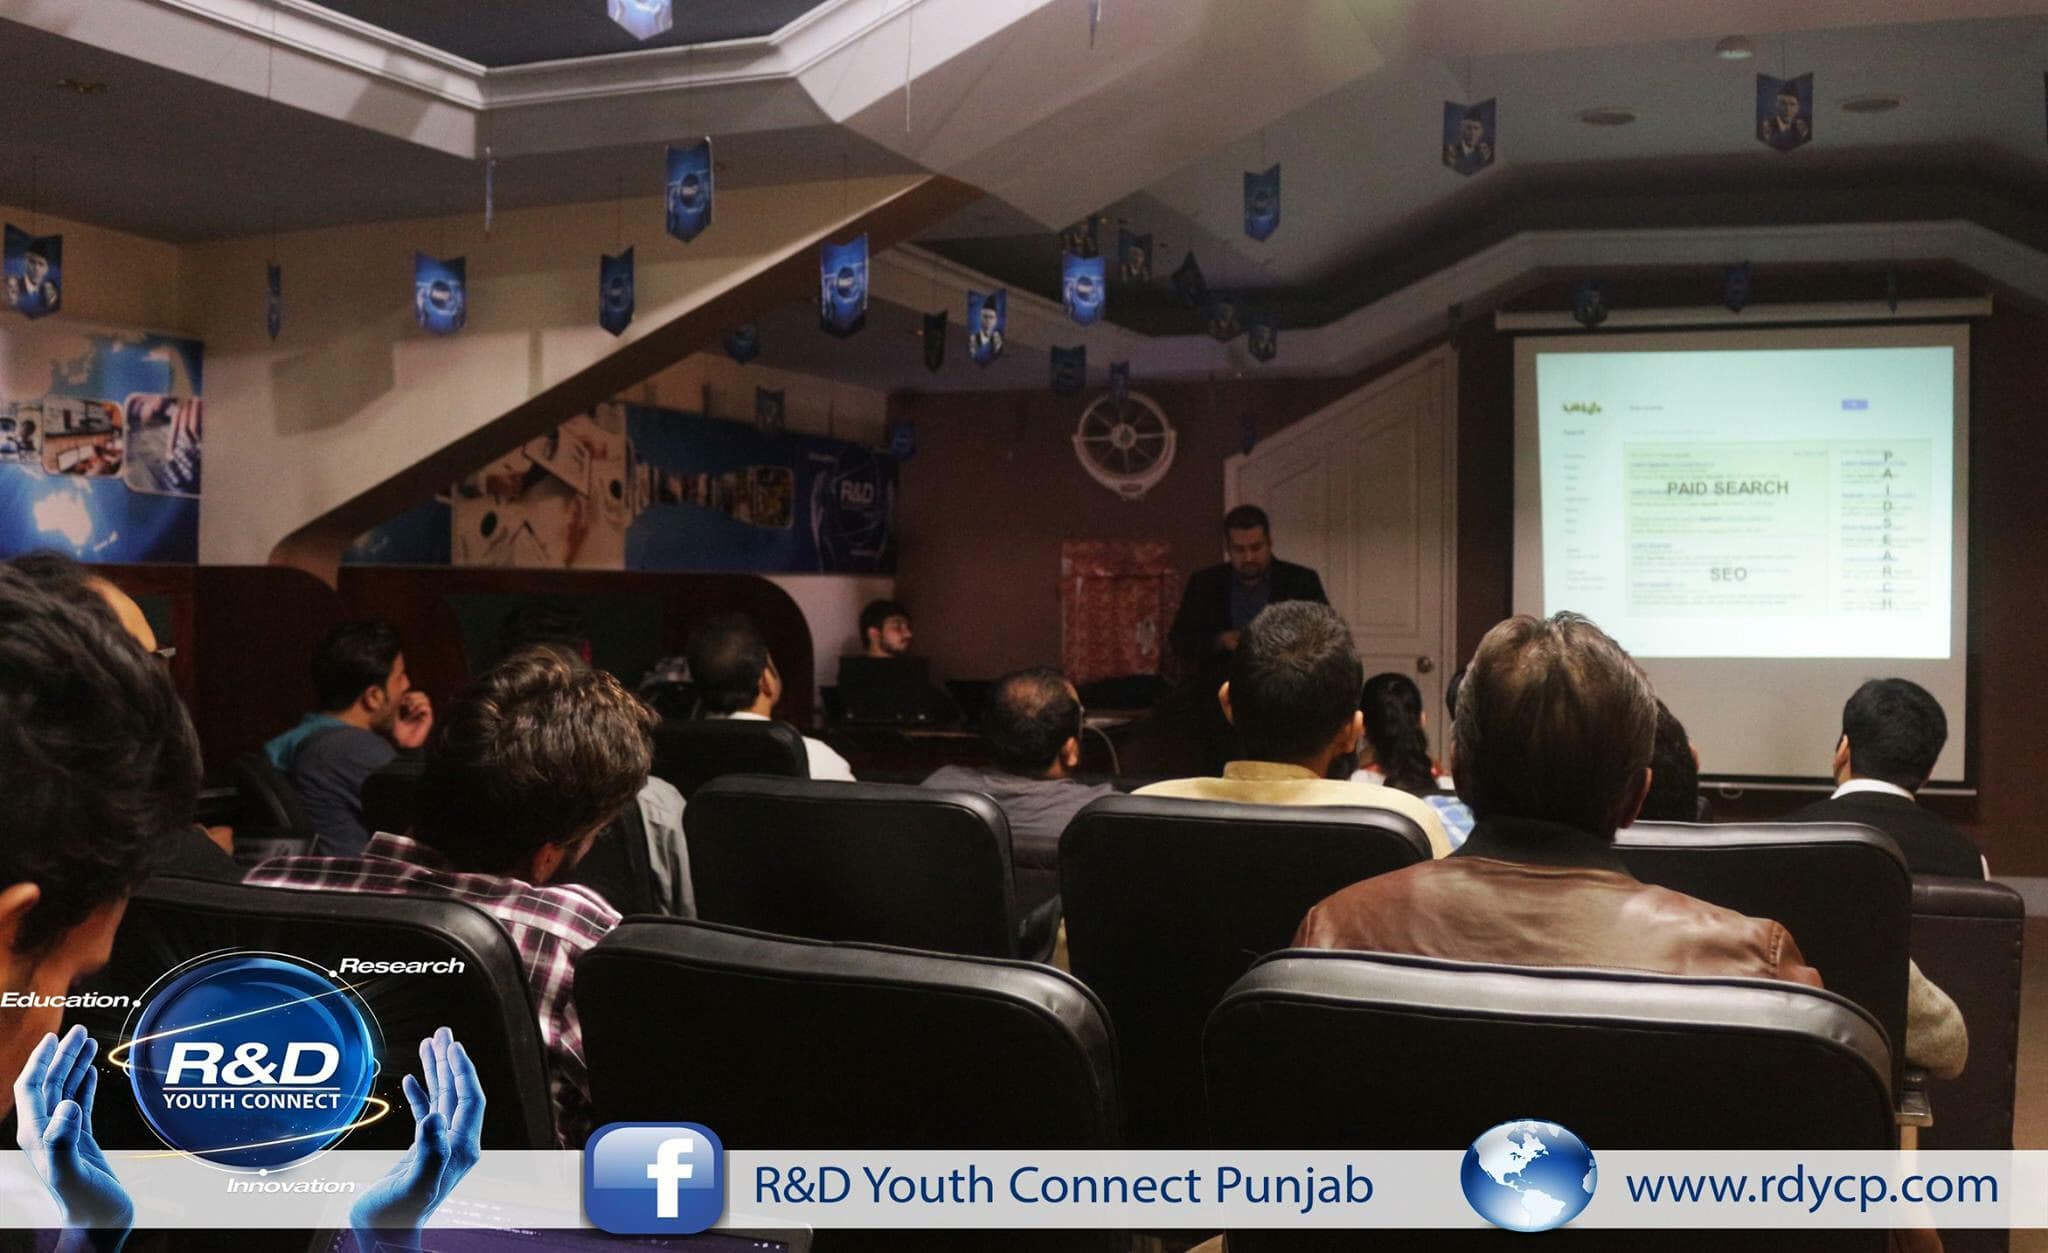 R & D Youth Connect Punjab Digital Marketing Growth Session Ali Raza